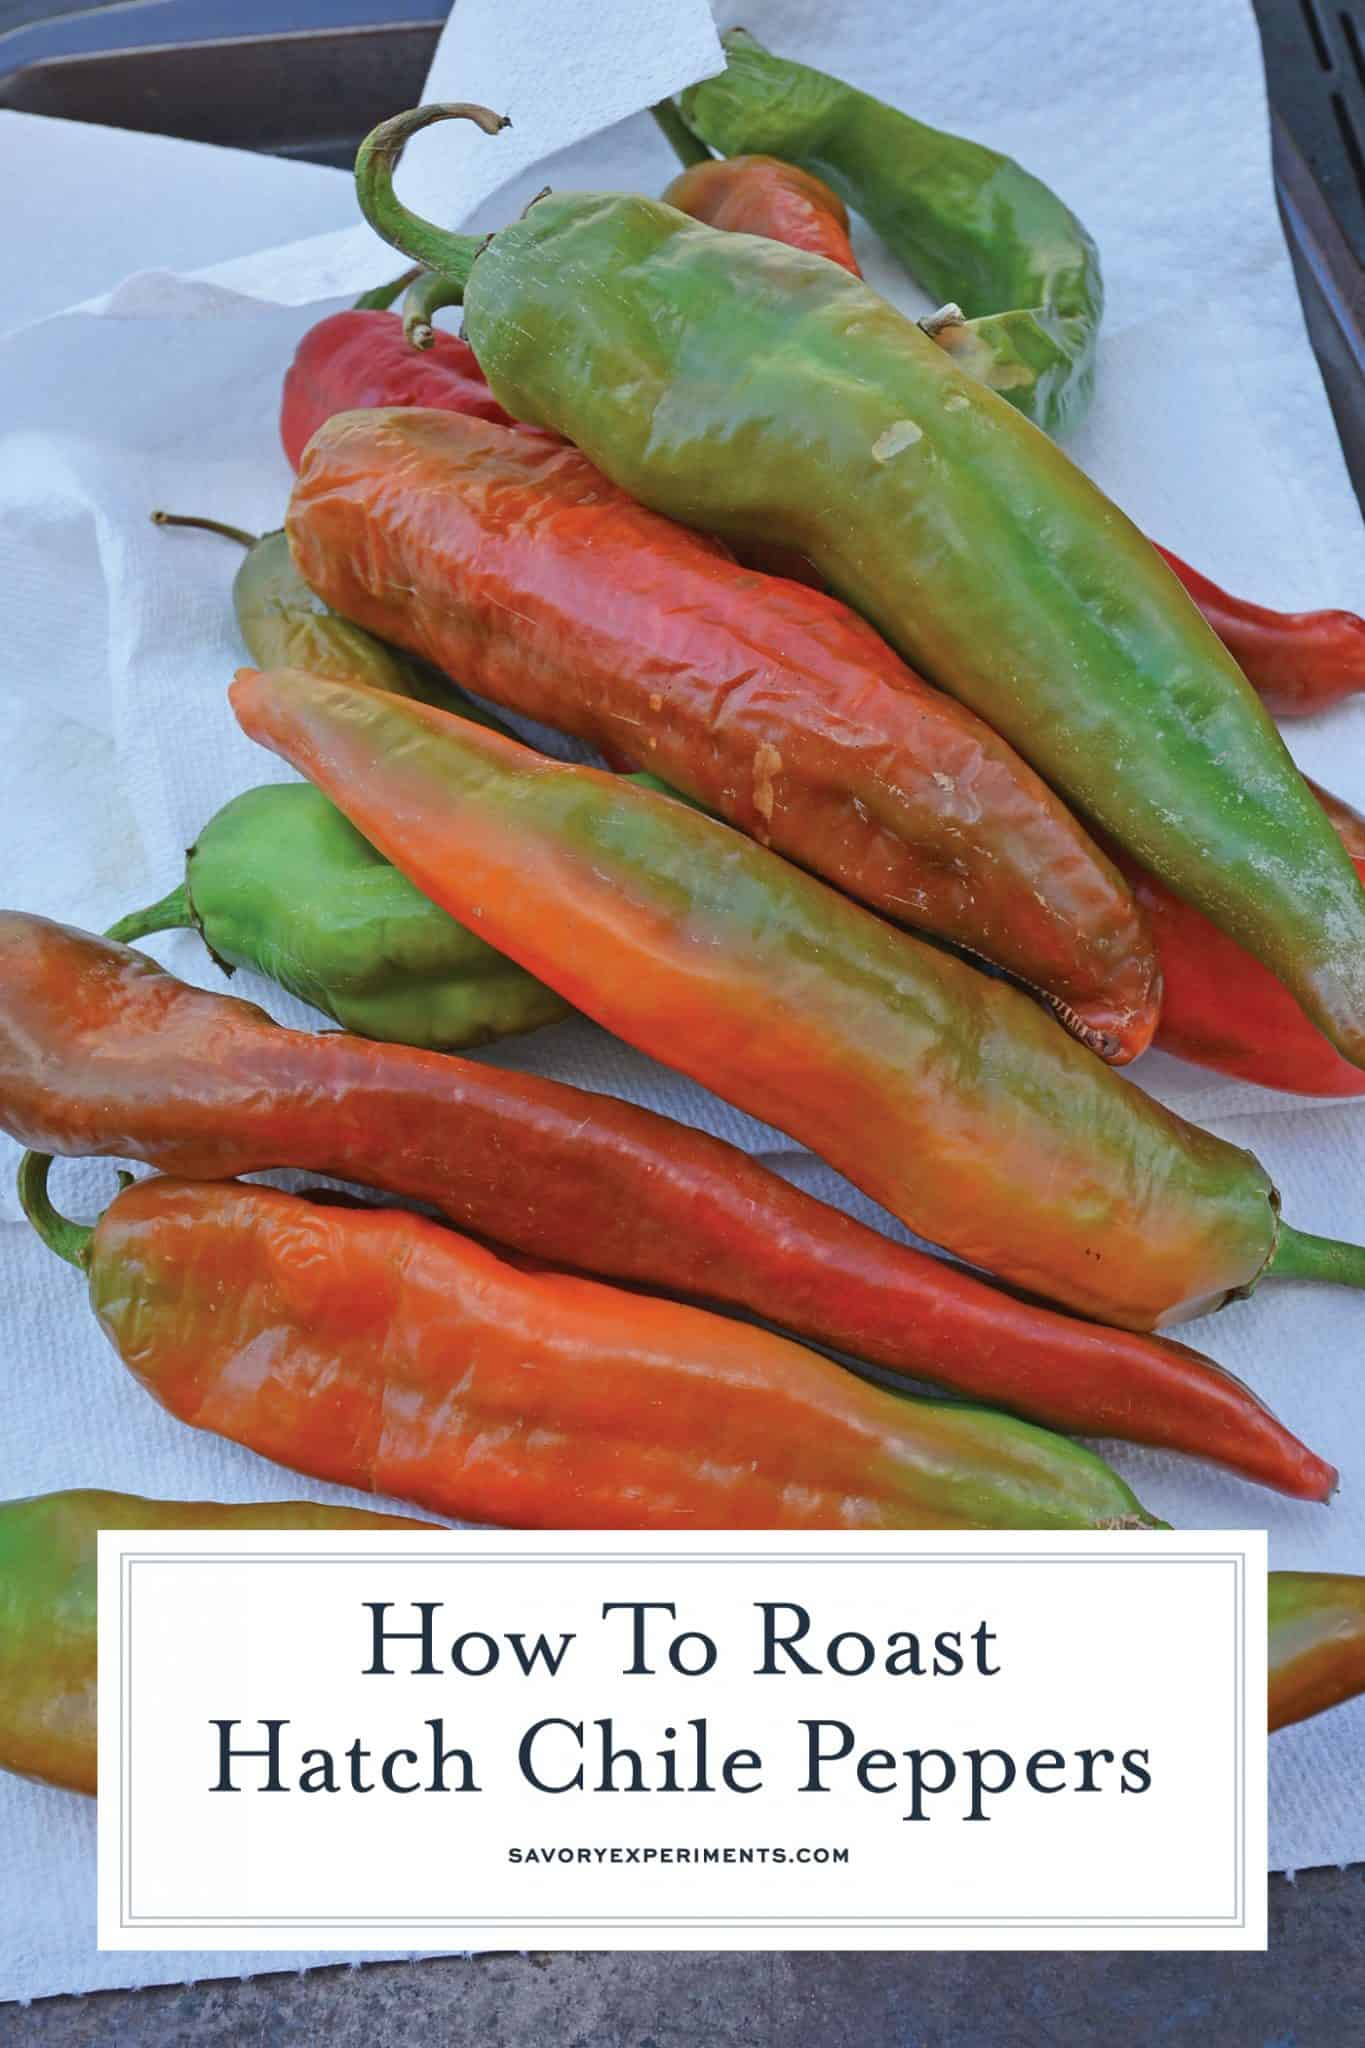 Step-by-step instructions with pictures on how to roast Hatch chile peppers. Roast, peel and seed super easy! #howtoroasthatchchilepeppers #hatchchile www.savoryexperiments.com